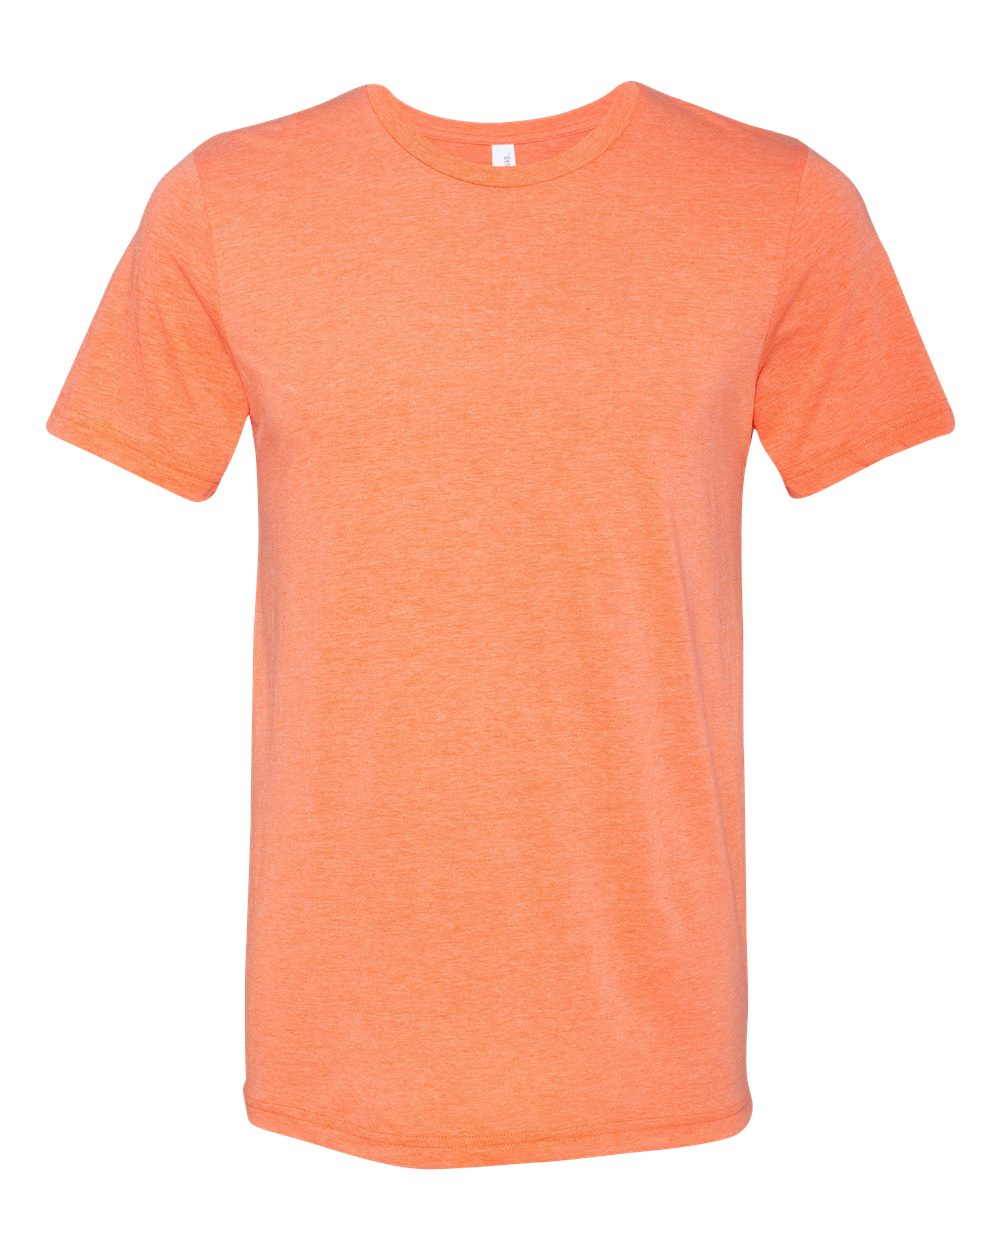 click to view Orange Triblend